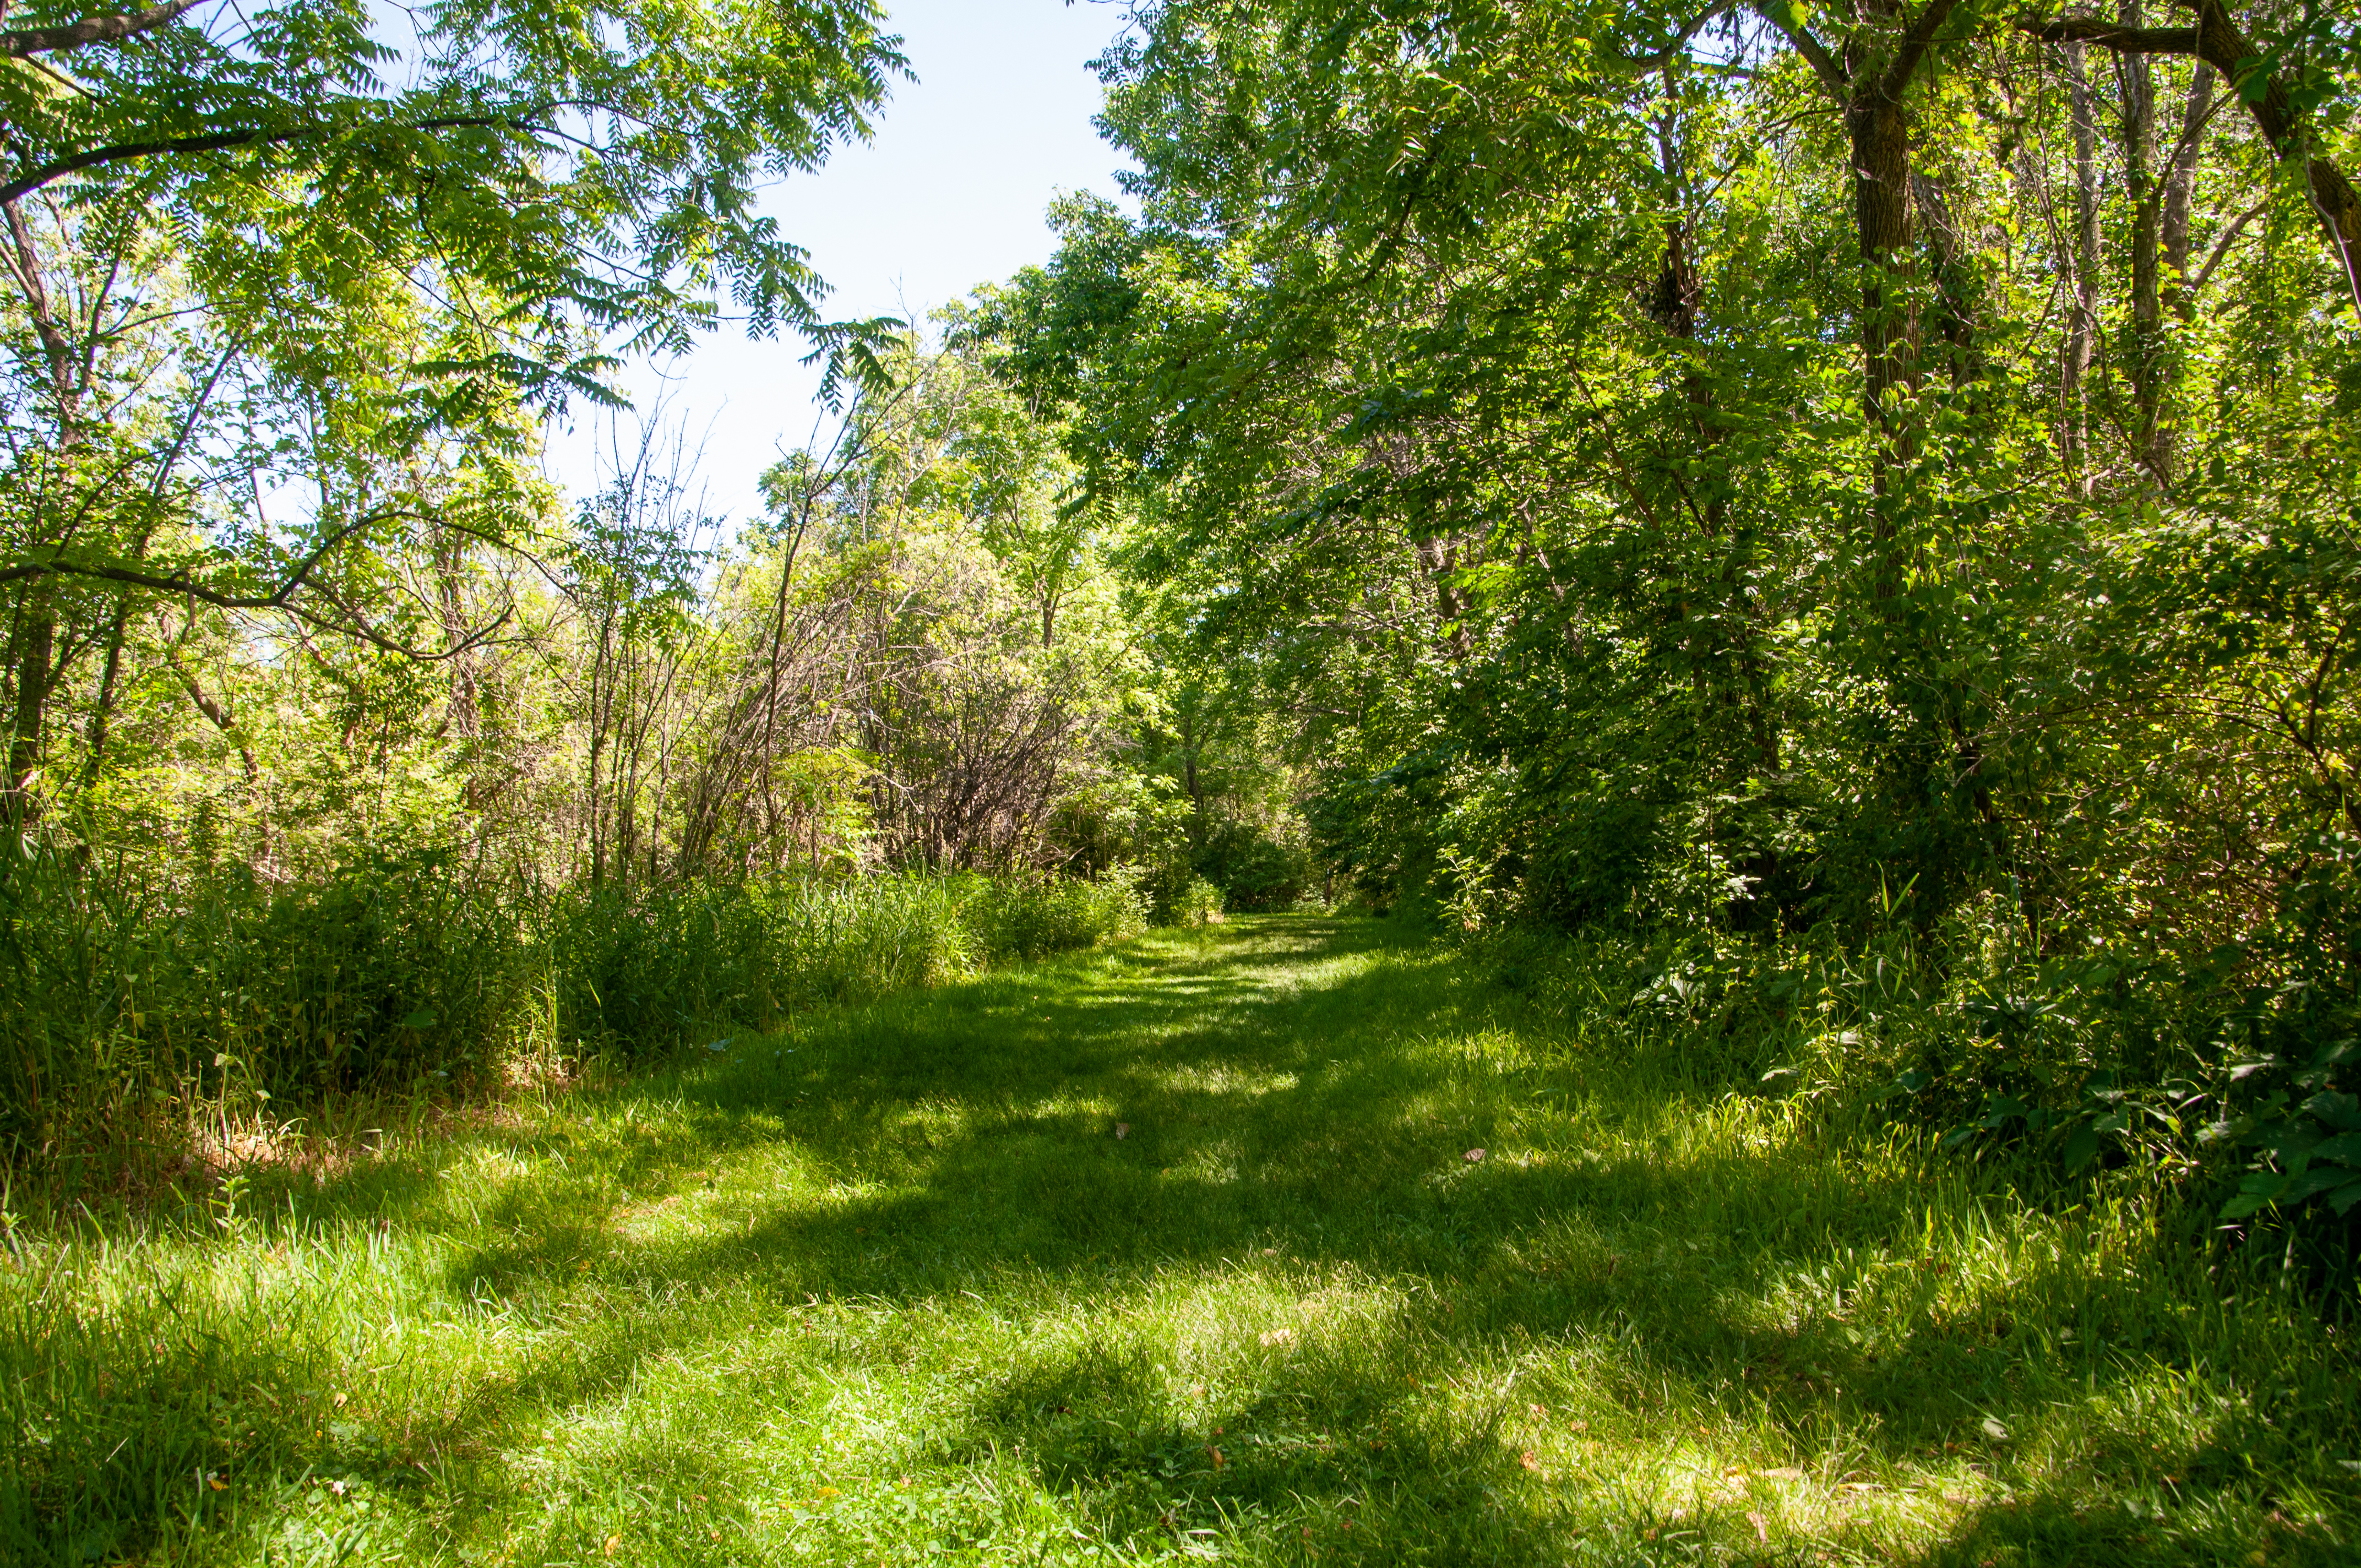 Go for a hike along 8 miles of trails at Governor Nelson State Park.